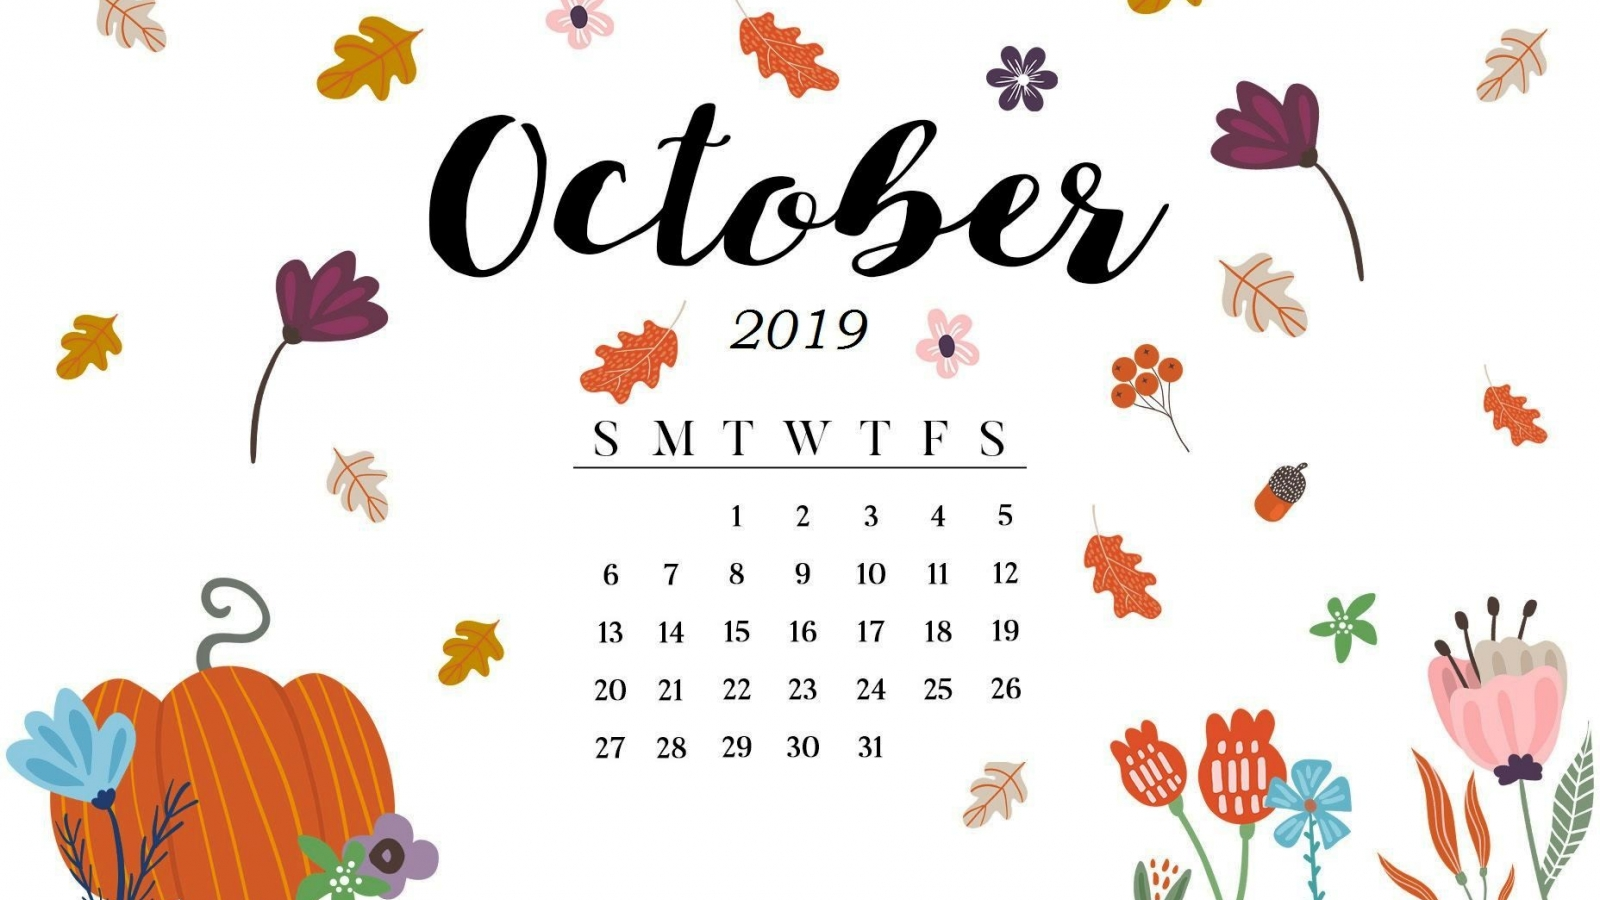 October 2020 Wallpaper 43 (1536x864)